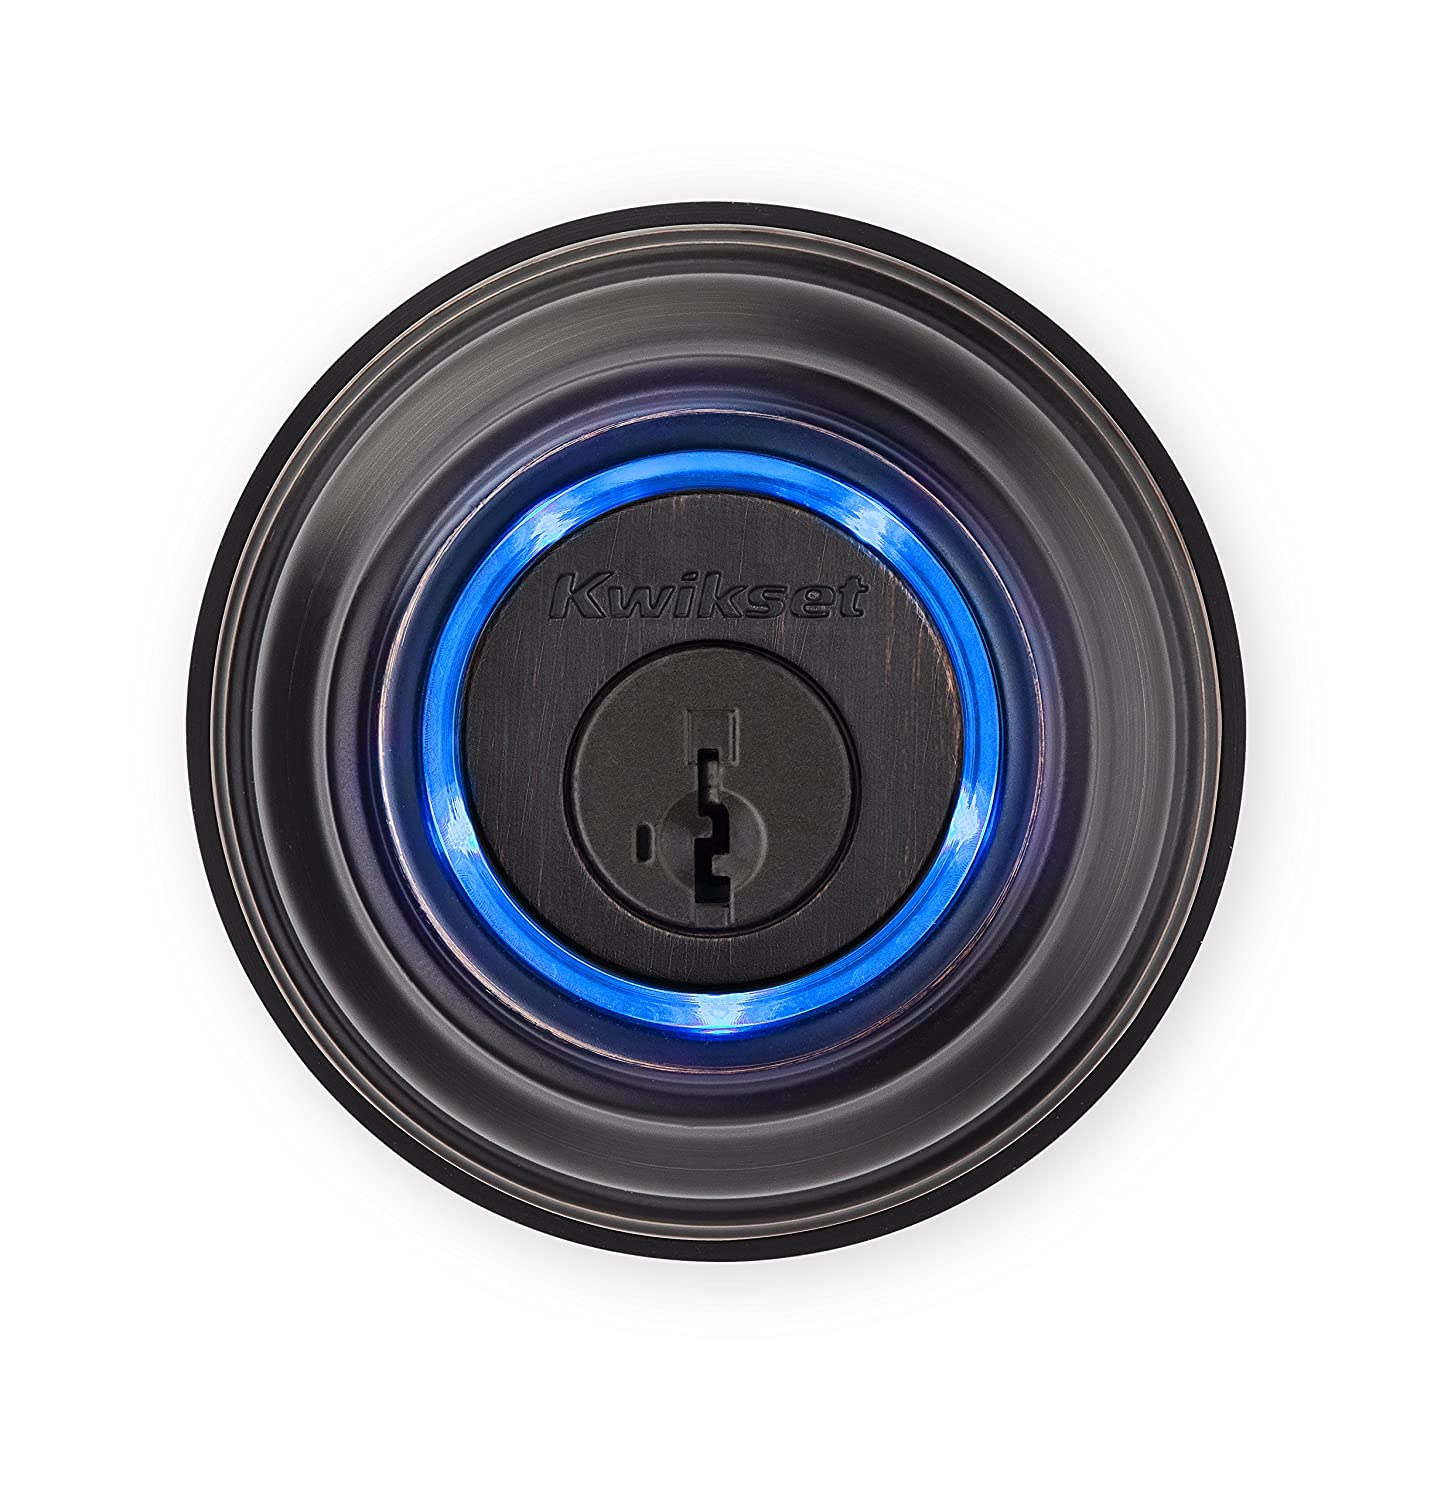 Kwikset Bluetooth Lock